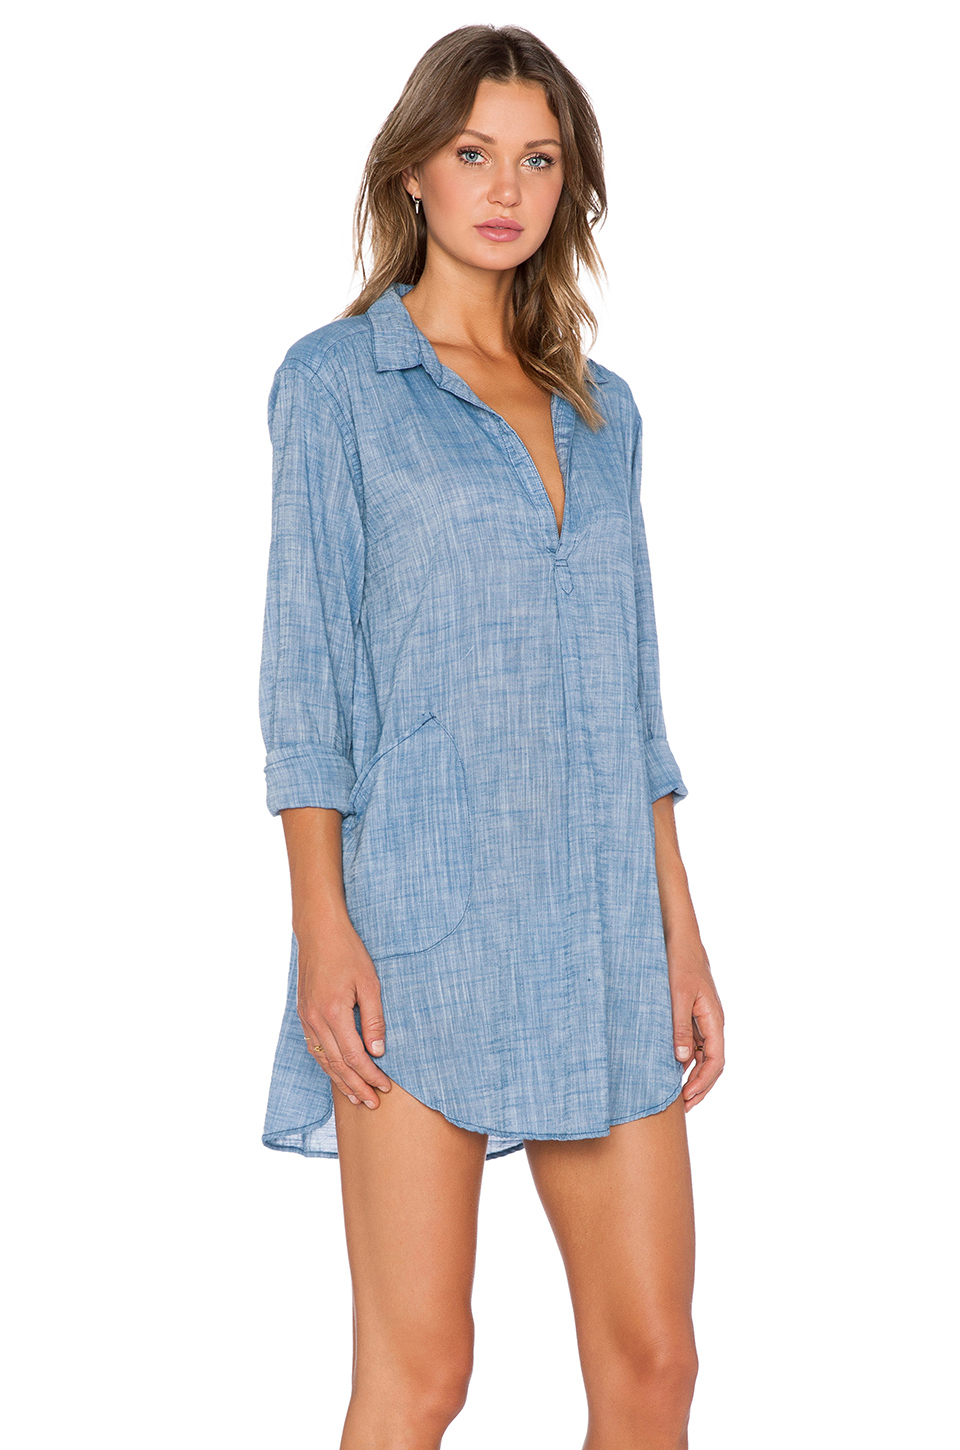 Lyst cp shades teton chambray top in blue for Chambray top